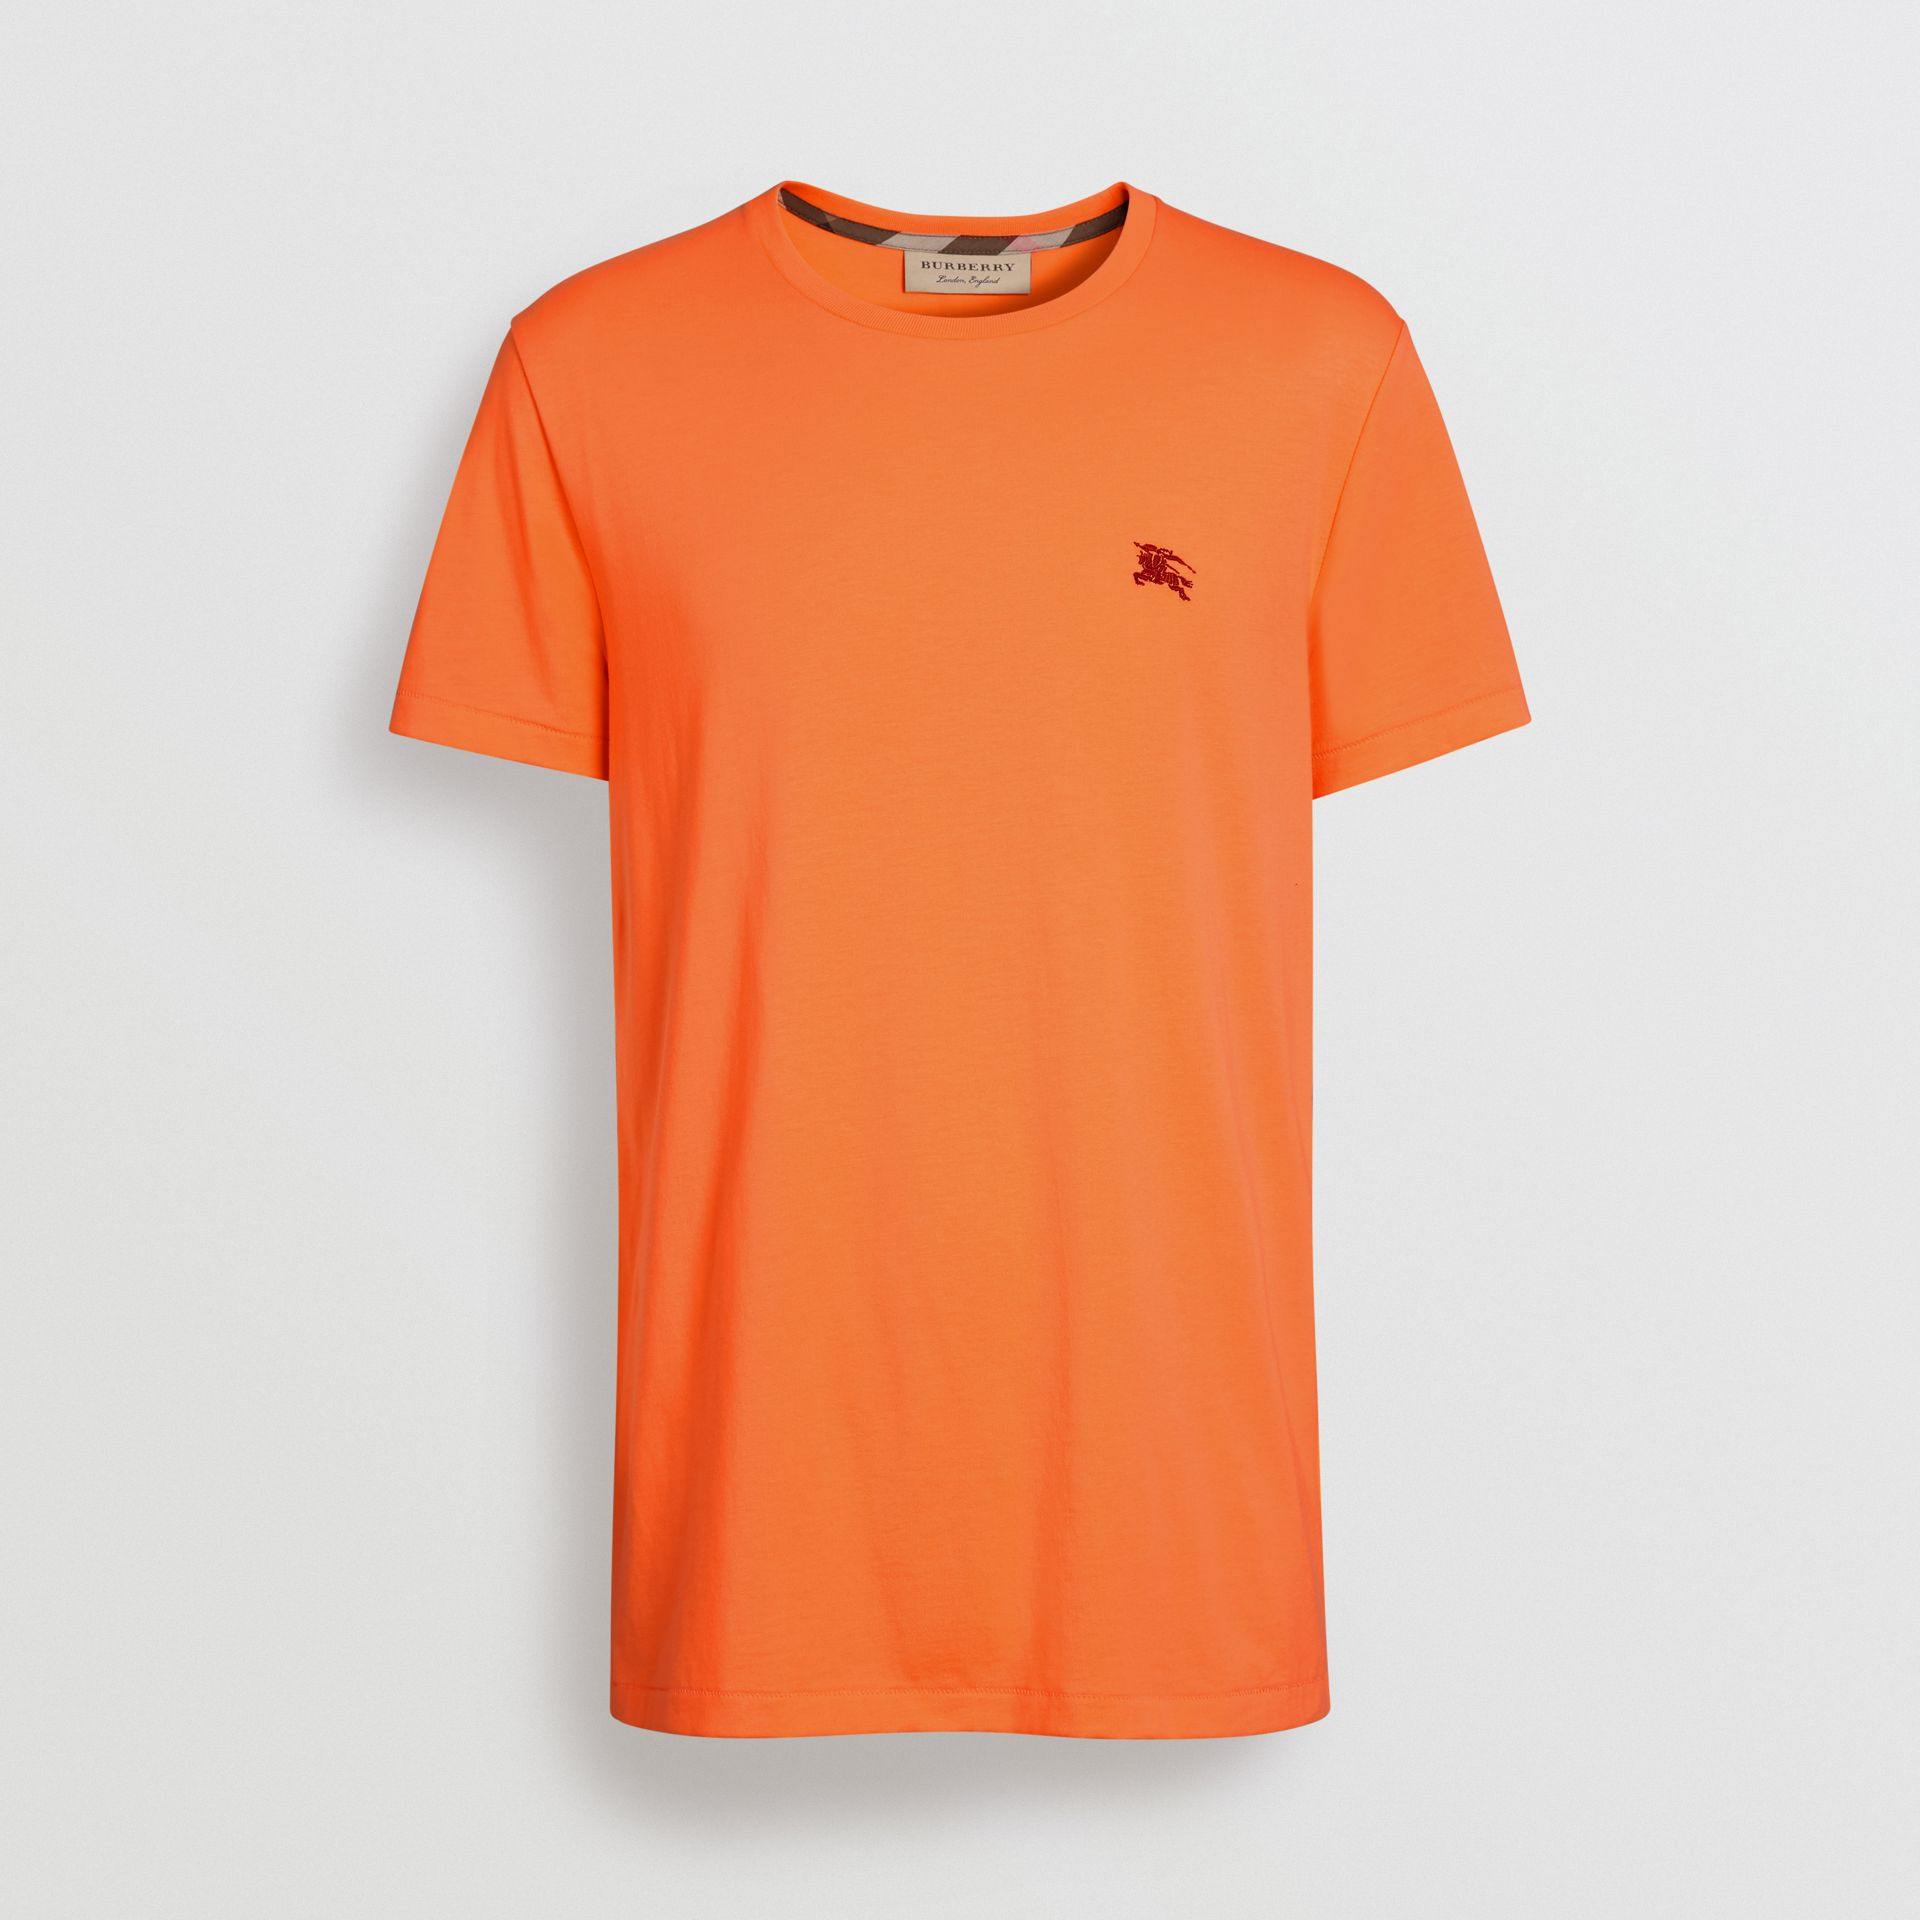 Cotton Jersey T-shirt in Bright Orange - Men | Burberry - gallery image 3